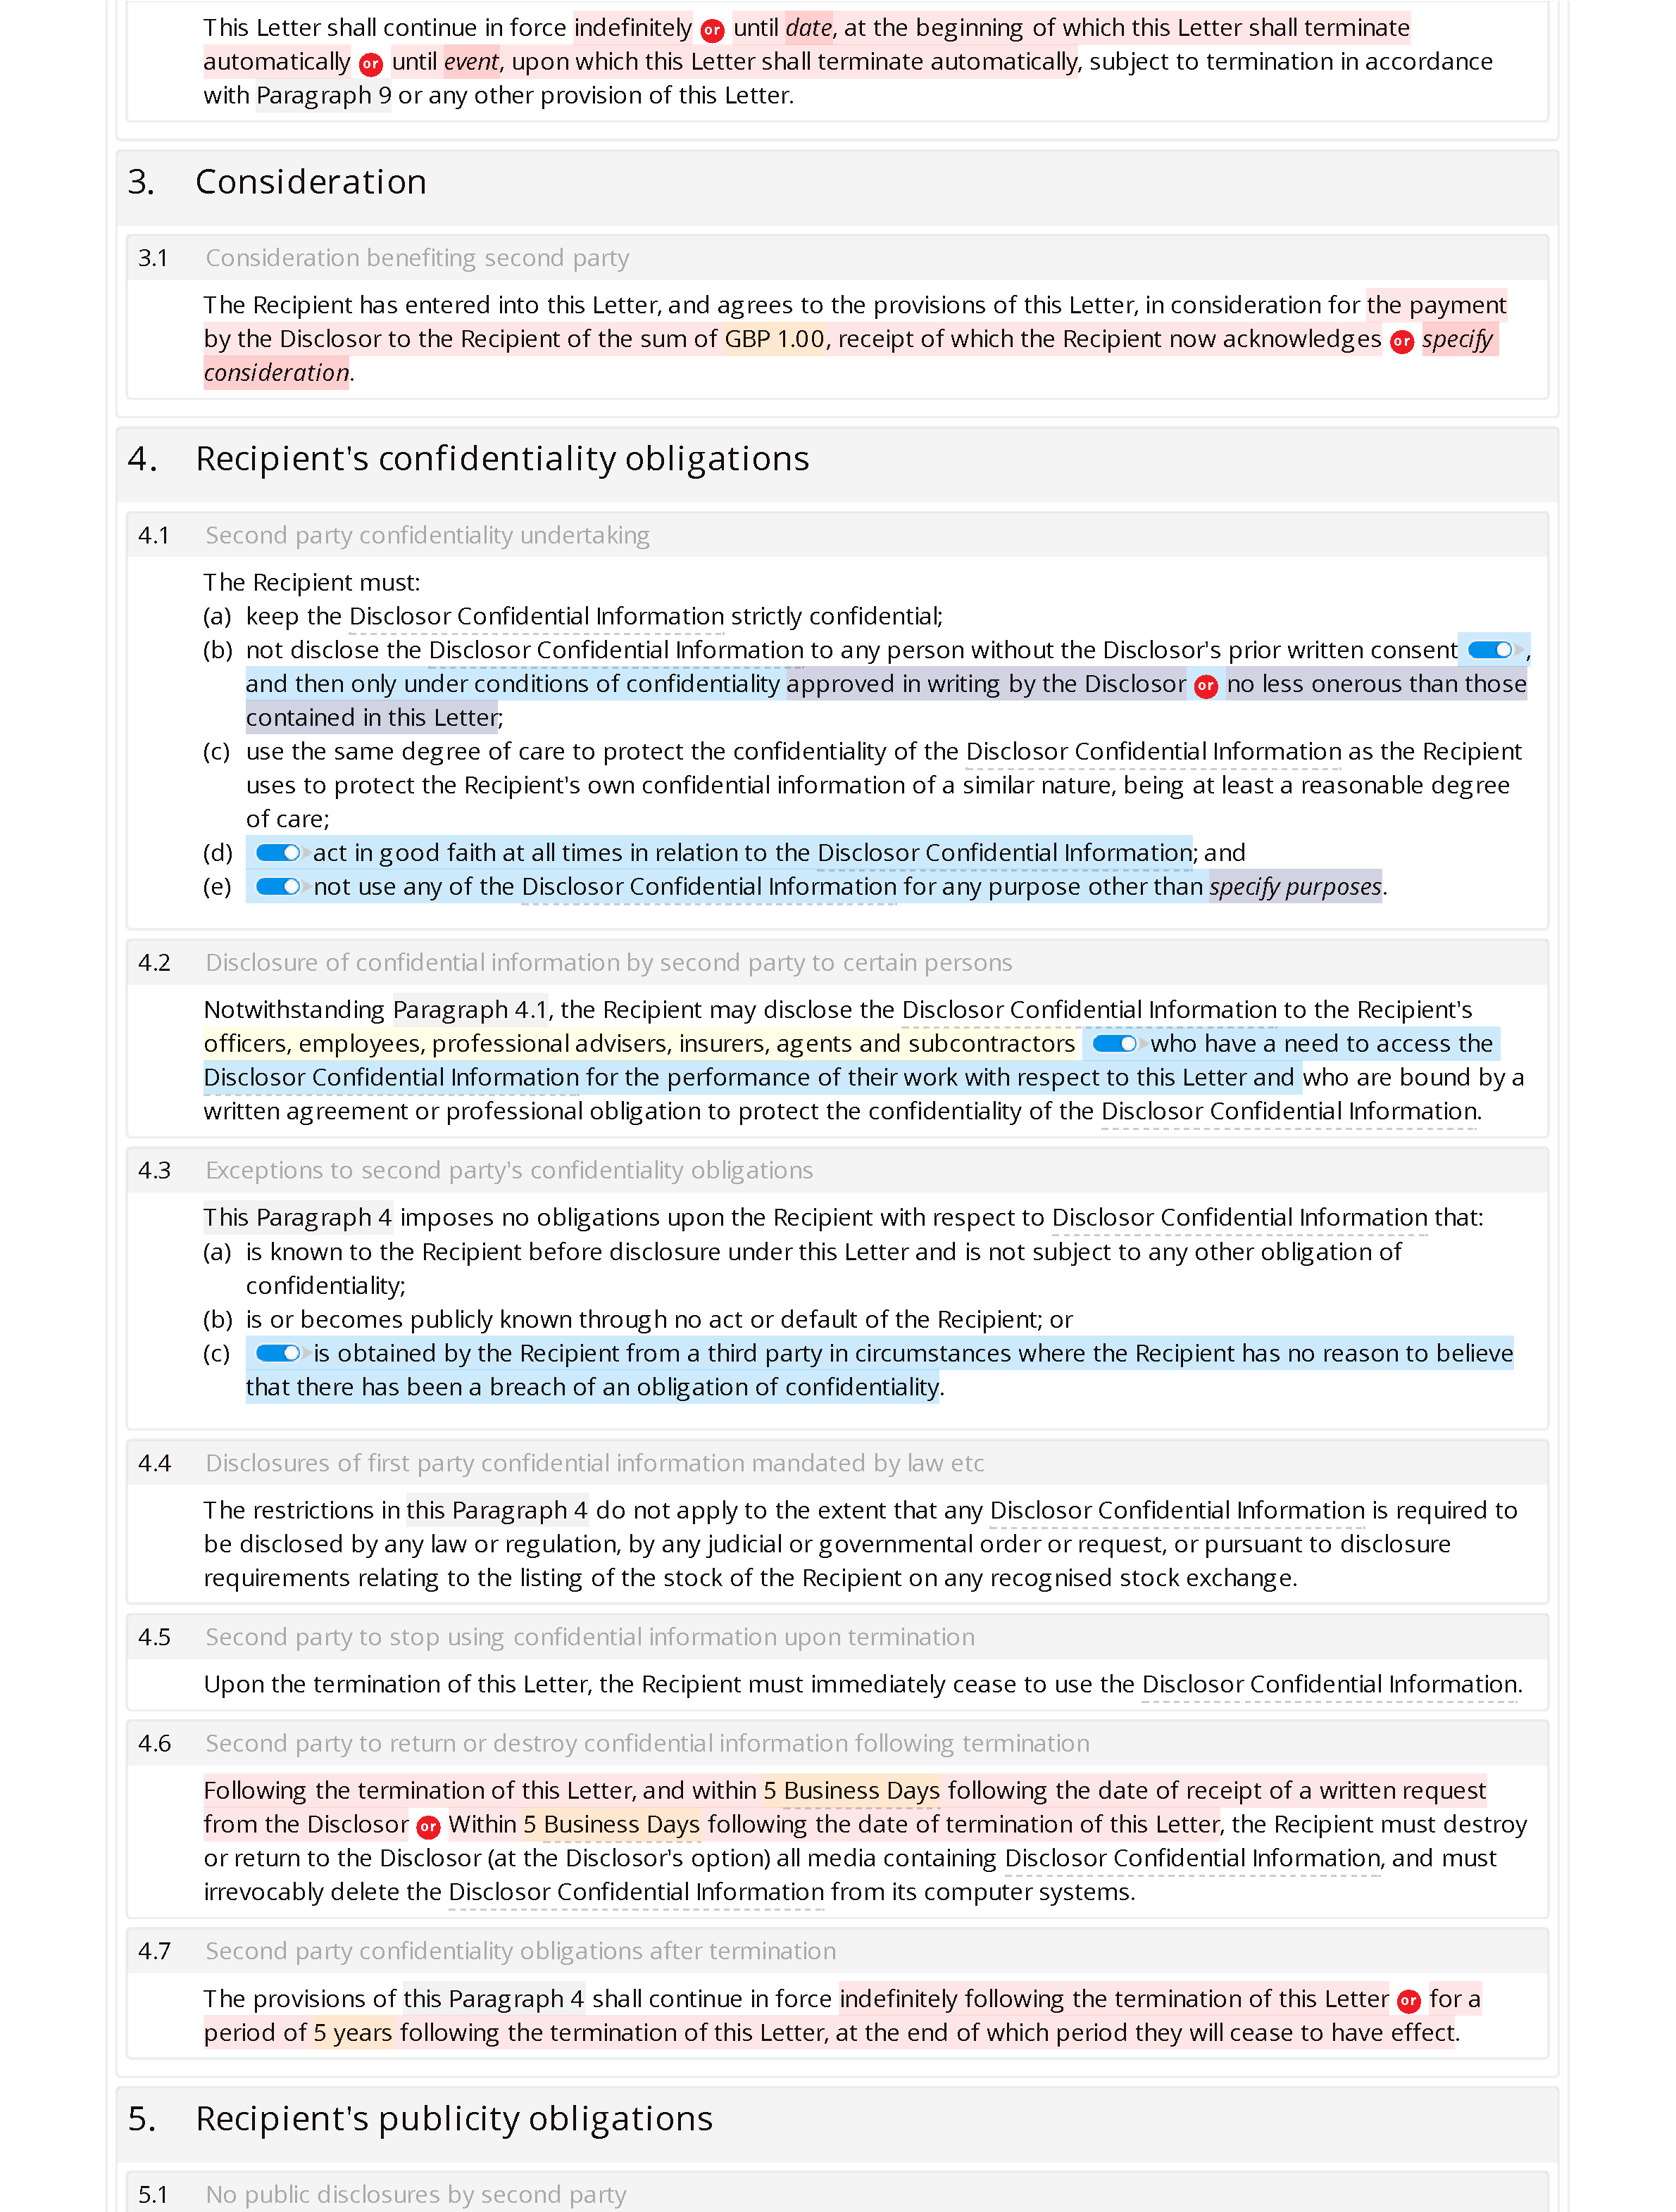 Non-disclosure letter (unilateral, premium) document editor preview